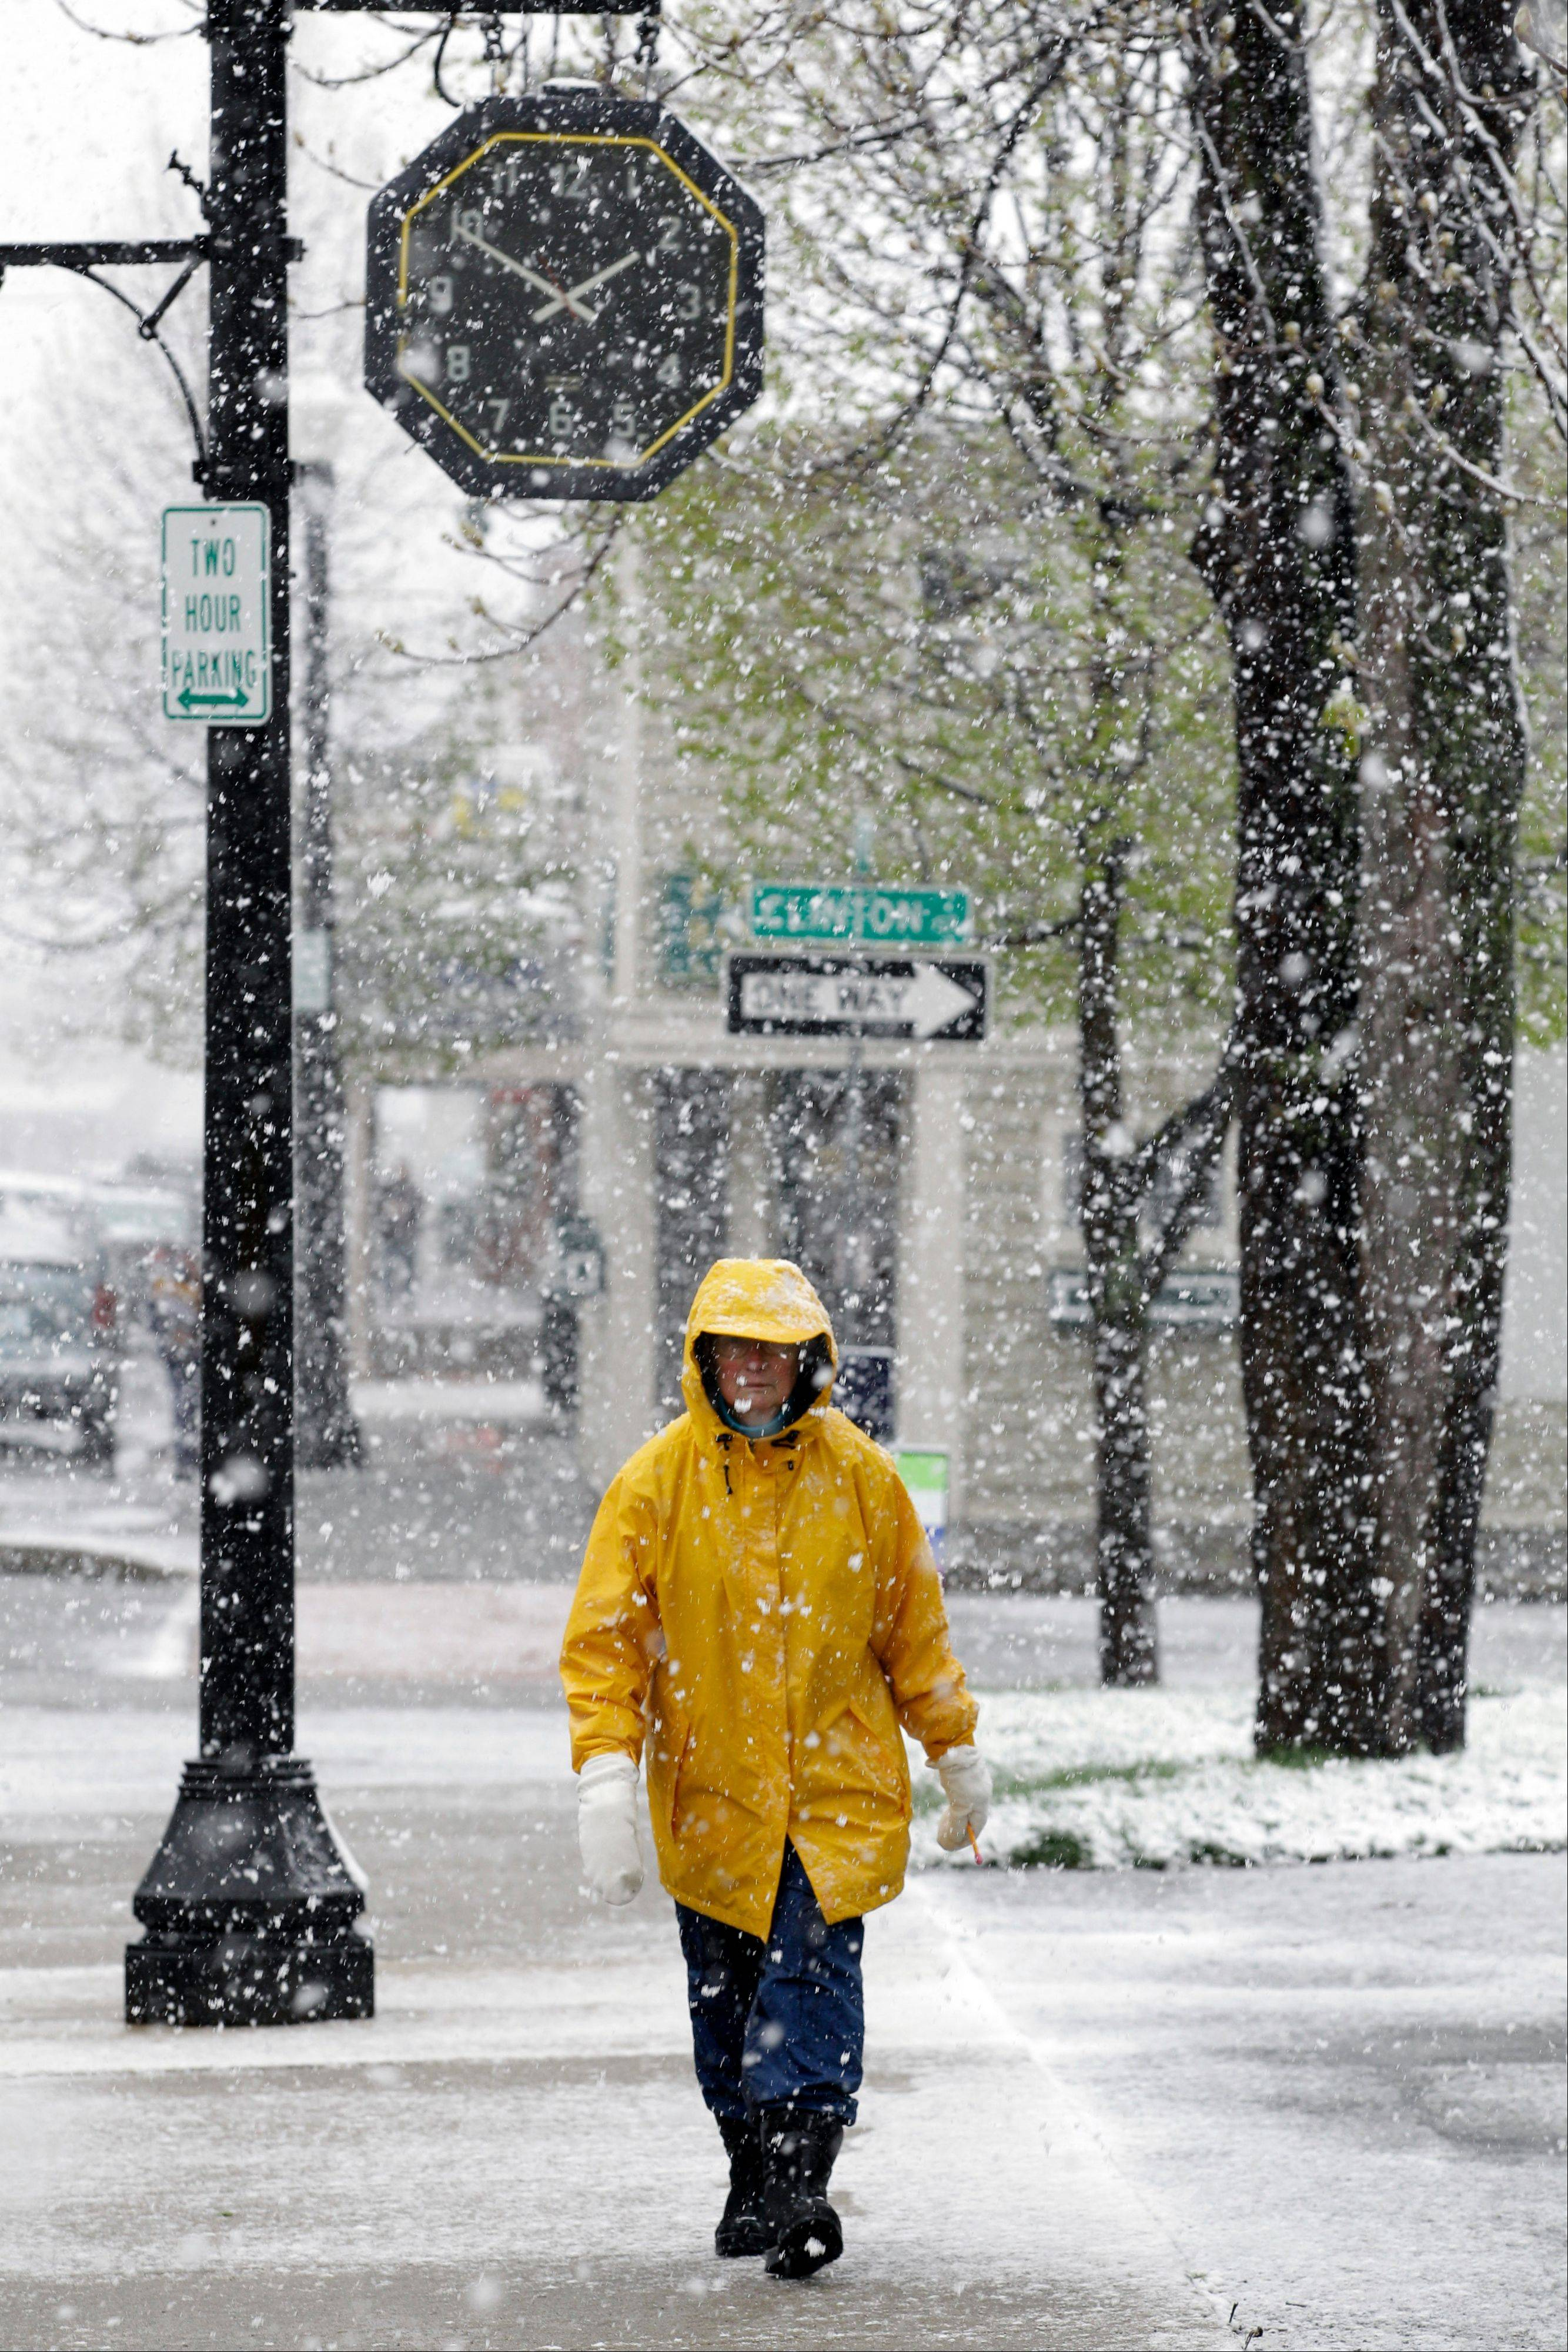 Fran Kowalik takes a walk during a spring snowstorm in Akron, N.Y., Monday, April 23, 2012. A spring nor'easter dumped up to six inches of snow east of Lake Ontario on Monday, and parts of western New York could see more than a foot of snow before the late-season storm moves on.